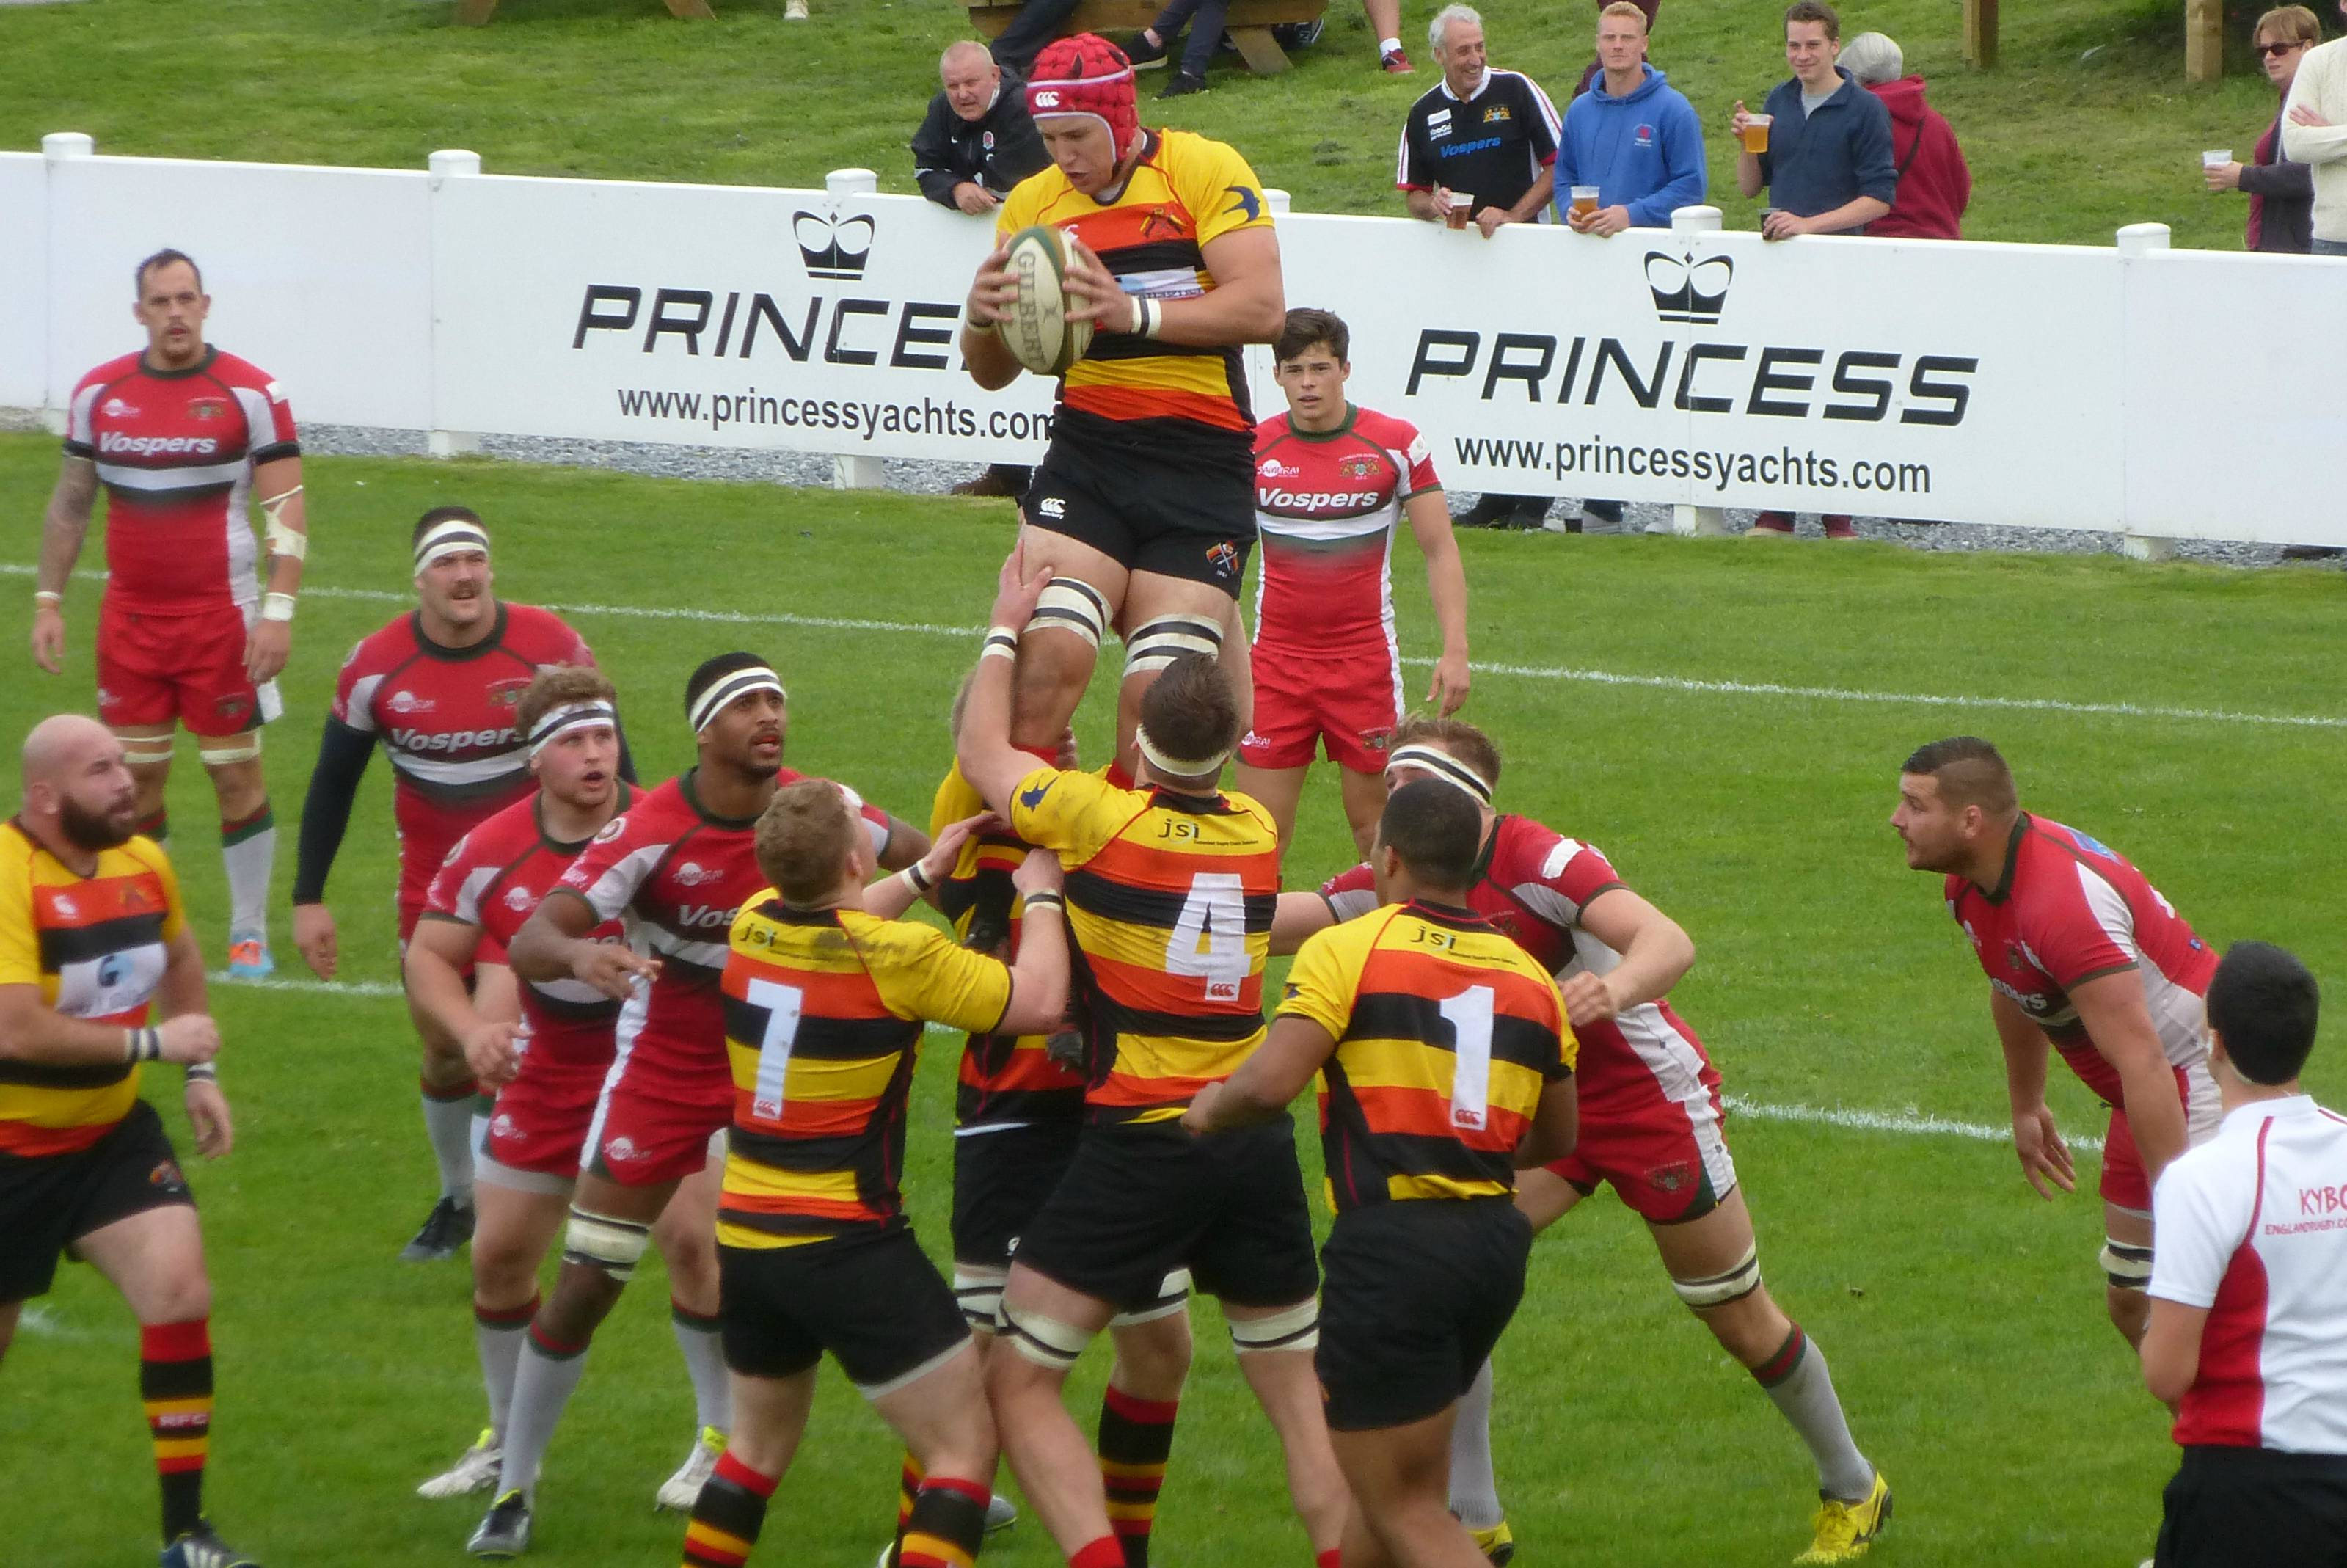 VIDEO: Plymouth Albion make winning start to life in